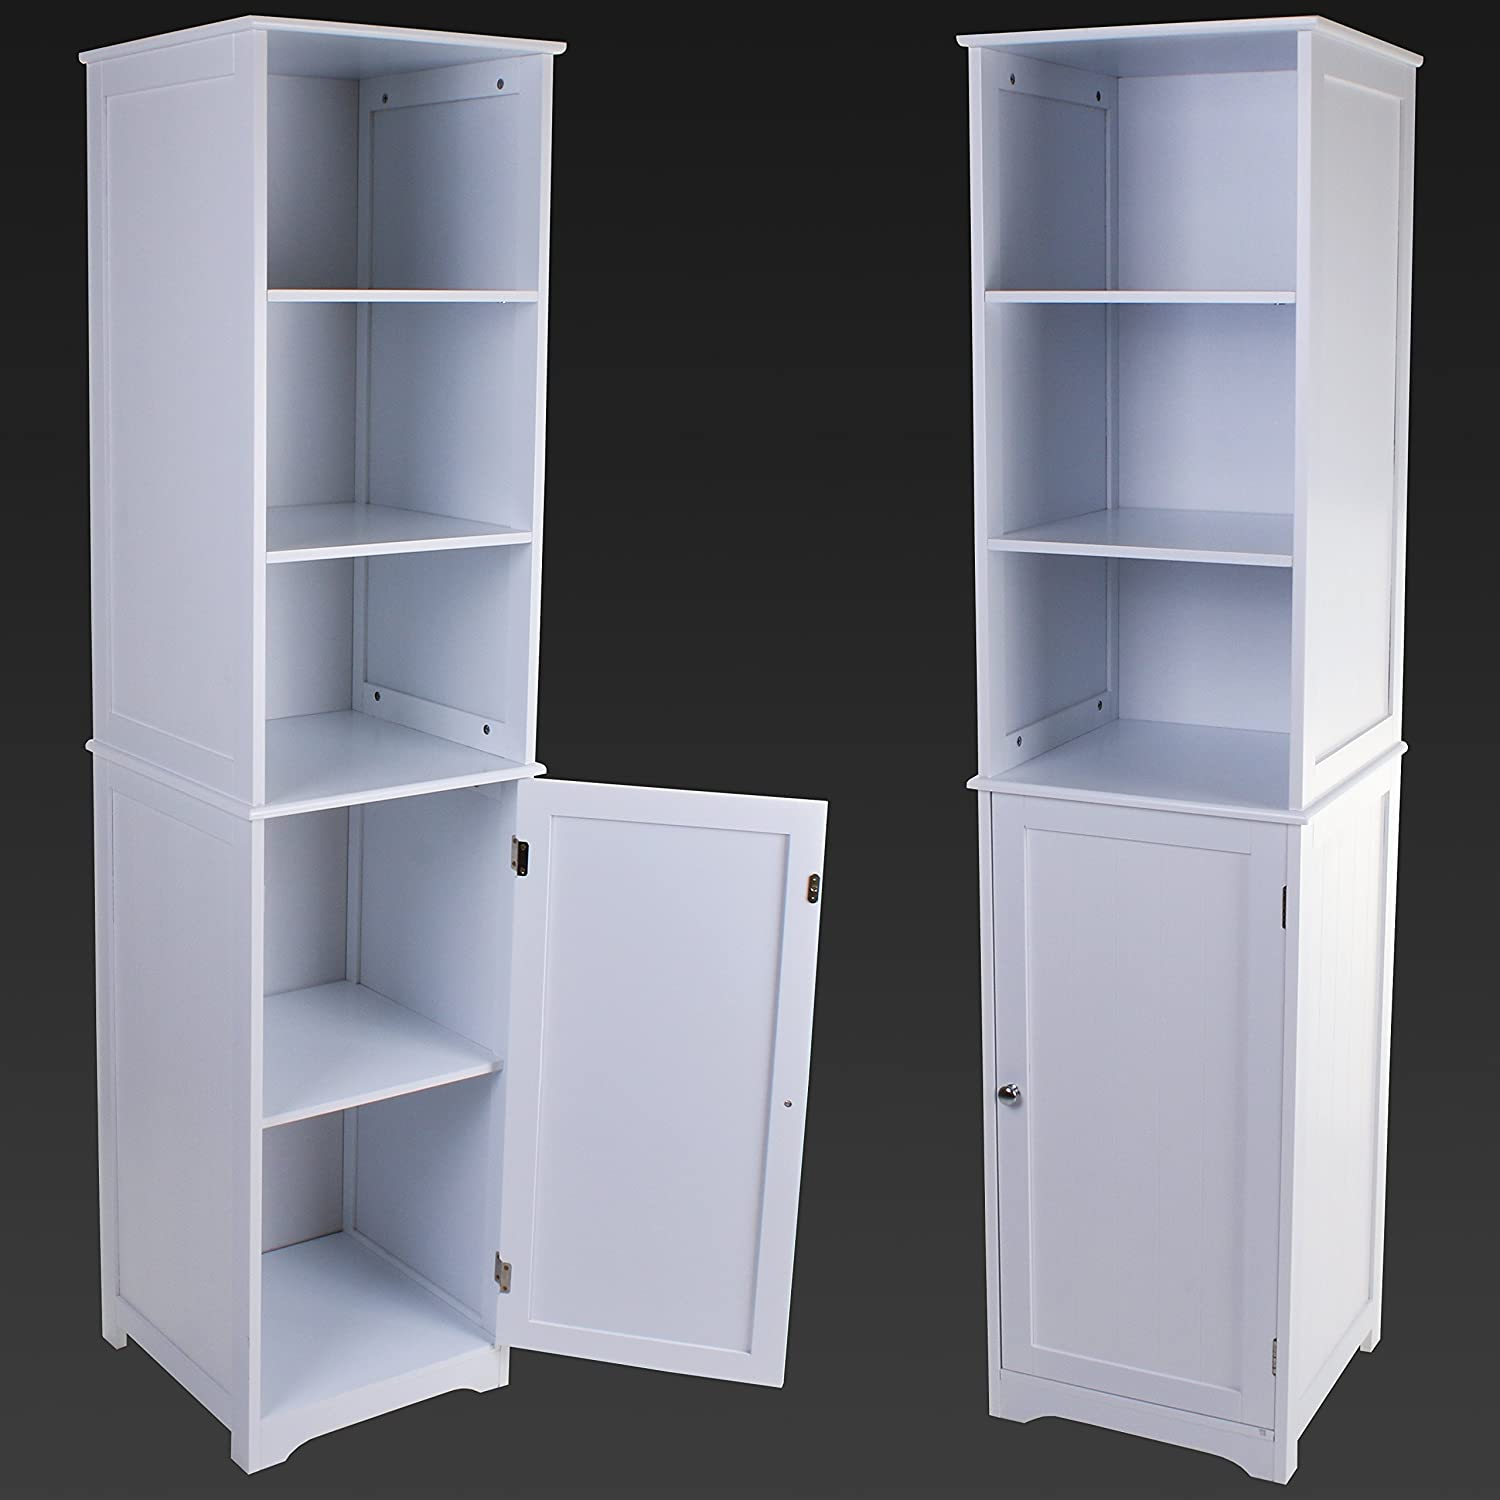 Tallboy Bathroom Cabinets Tallboy Living Room Bathroom Kitchen Display Cabinet Hallway